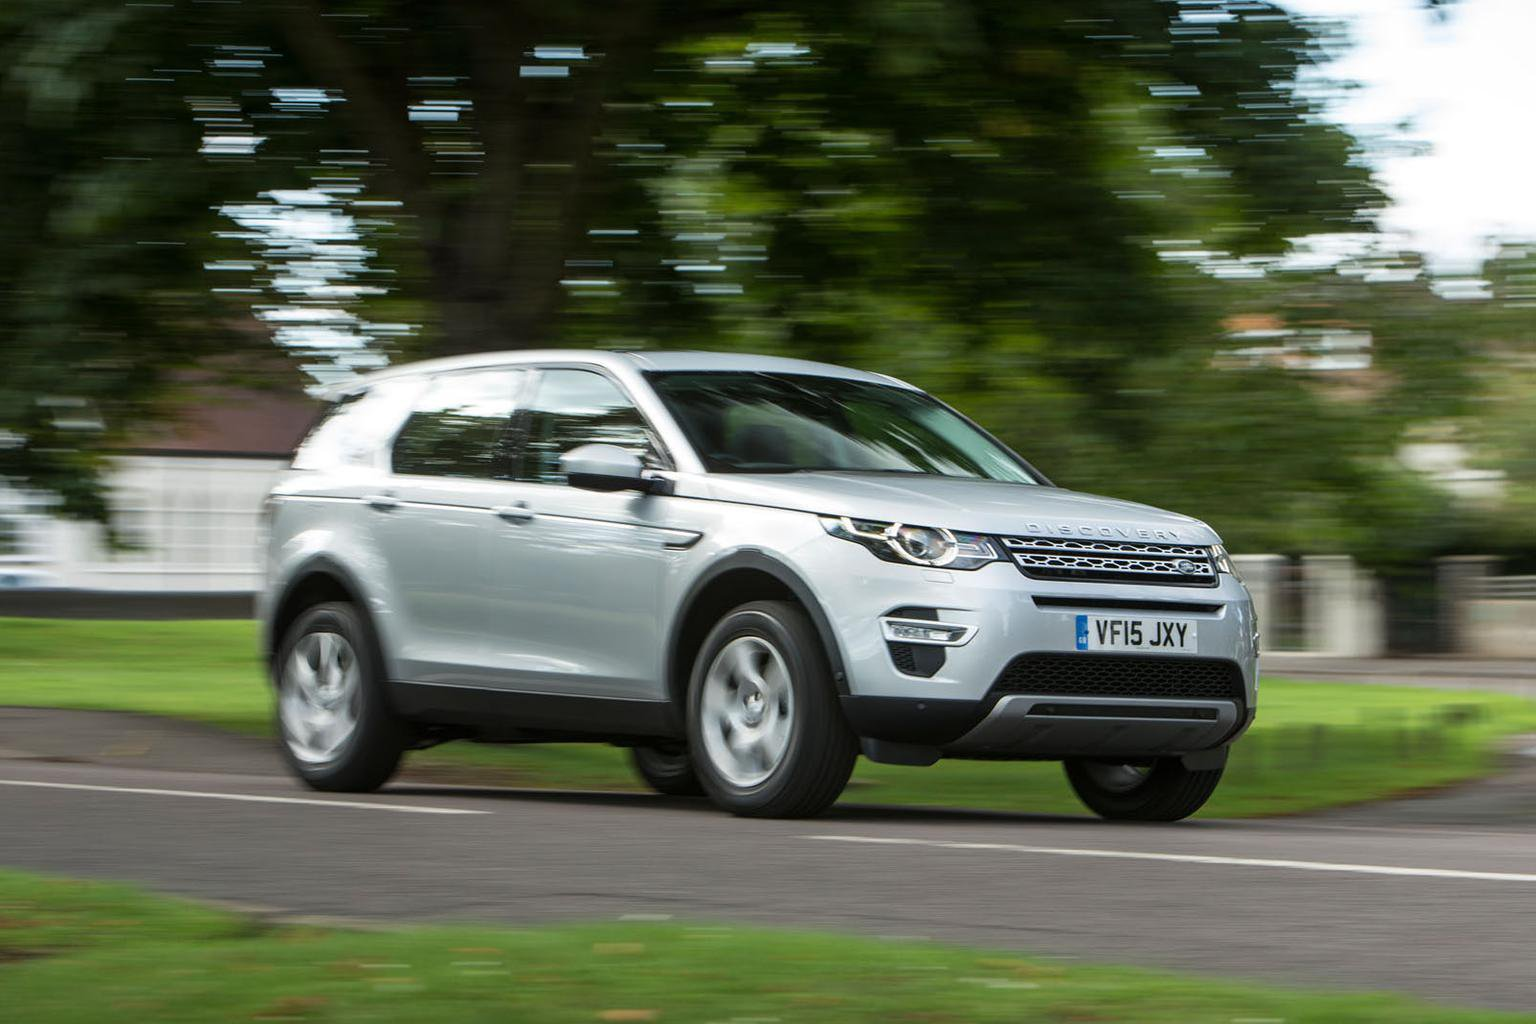 2016 Land Rover Discovery Sport 2.0 TD4 150 E-Capability review